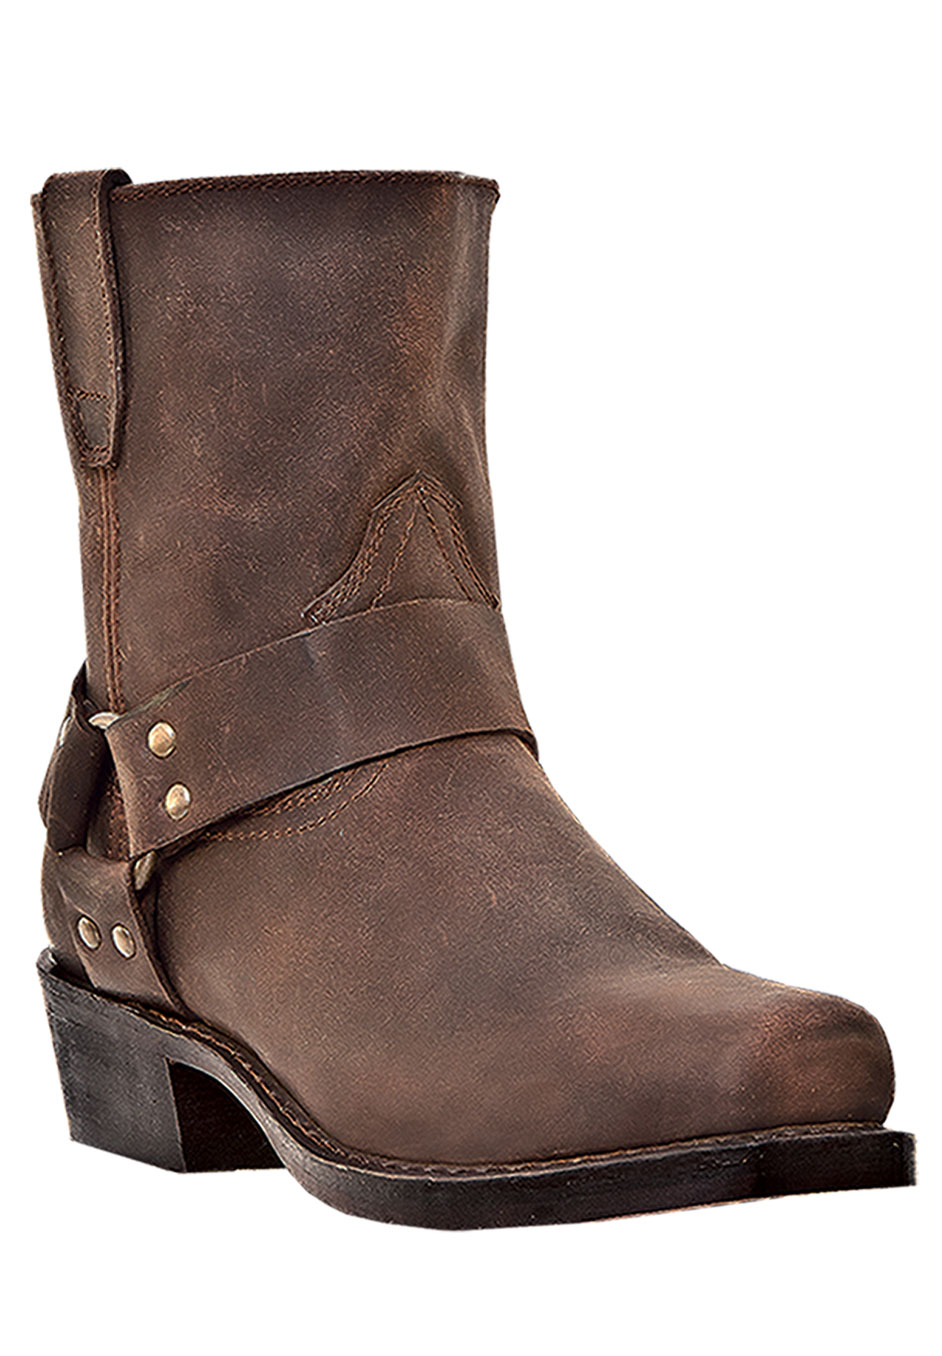 "Dingo 7"" Harness Side Zip Boots,"